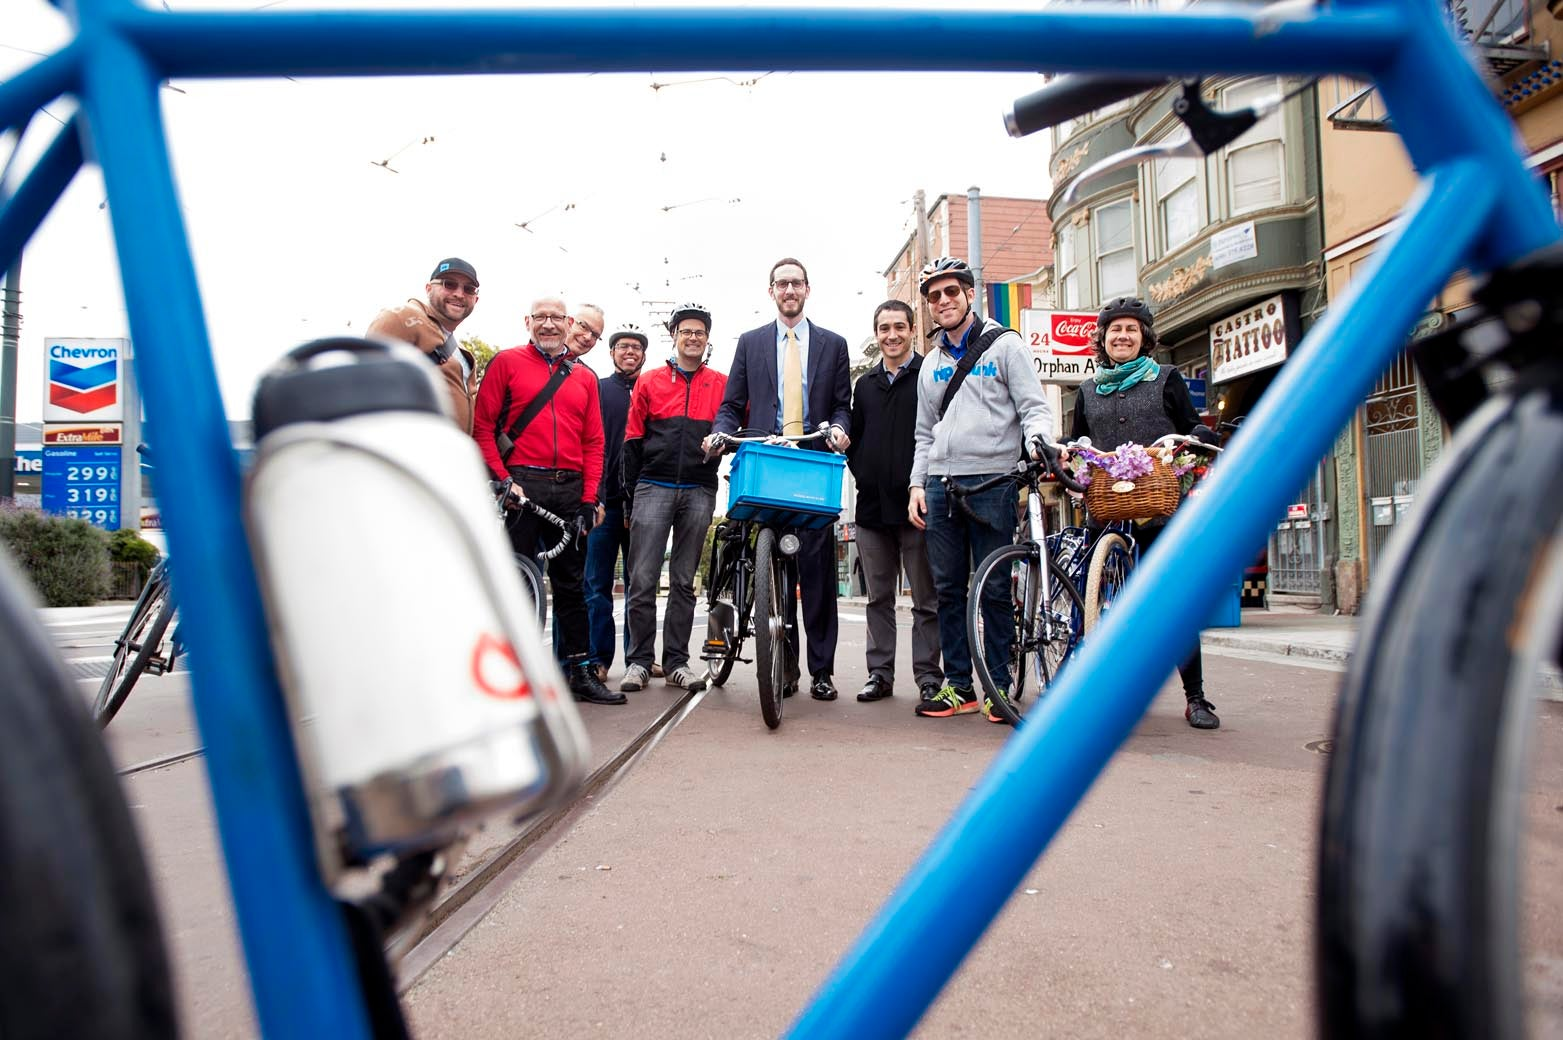 Commissioner Scott Wiener poses for the camera with a group of cyclists